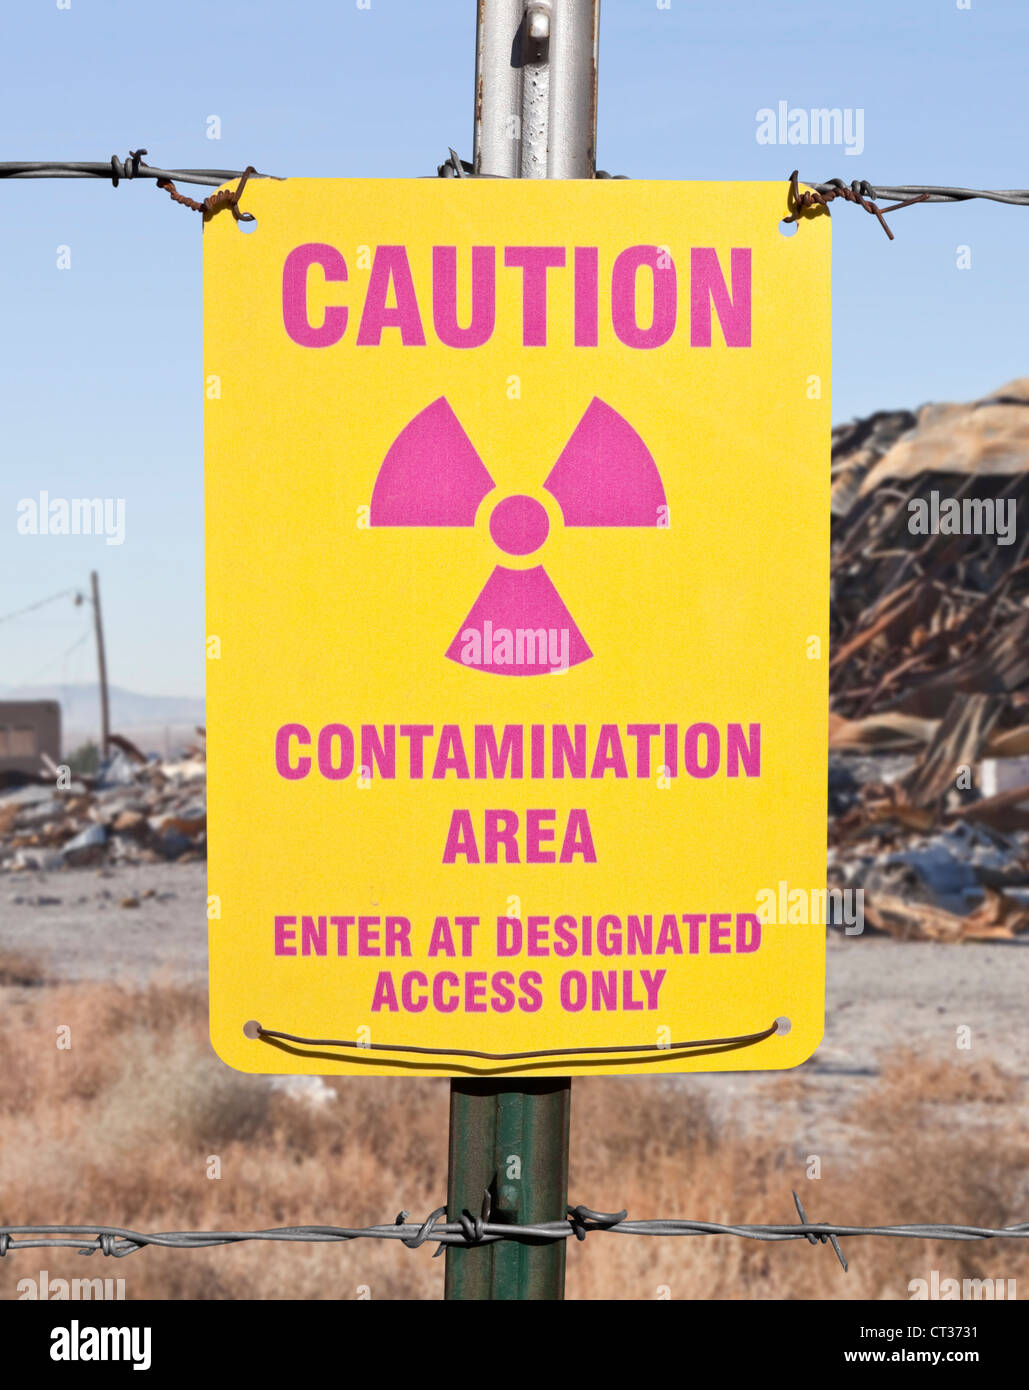 Caution radioactive contamination warning sign with barb wire fence. - Stock Image